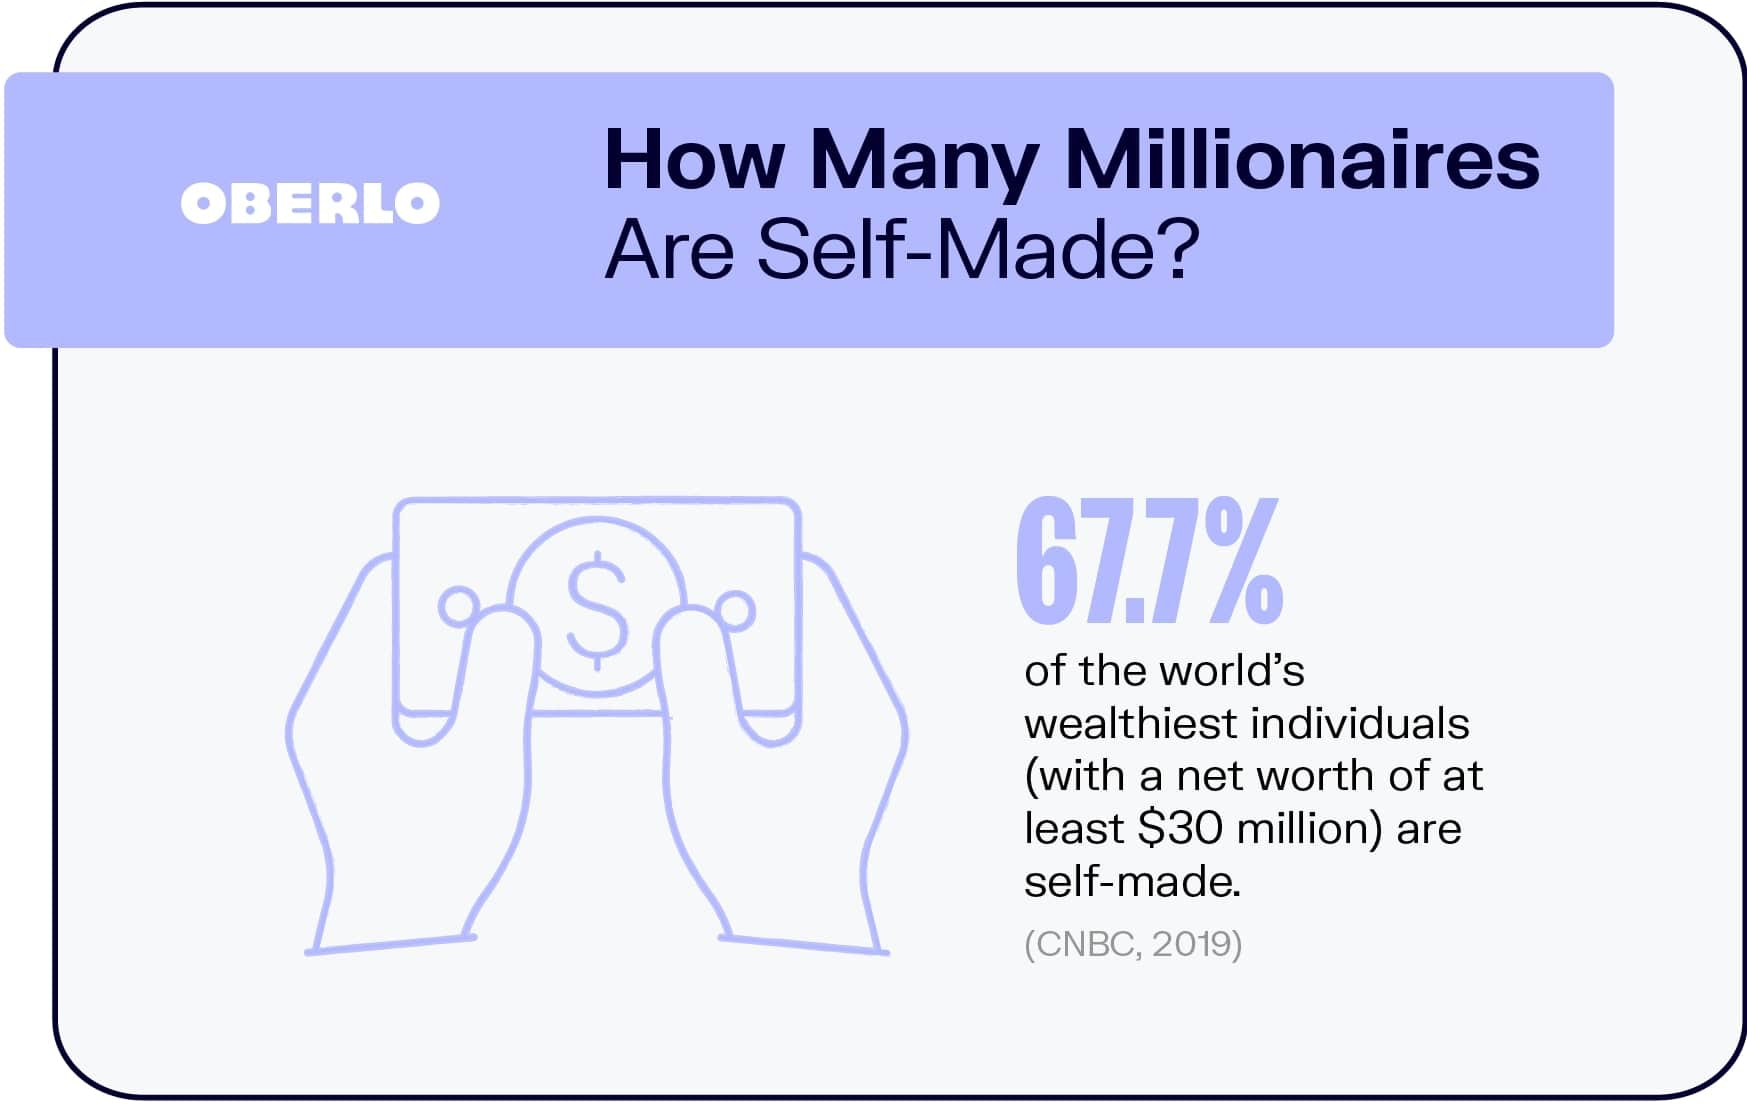 How Many Millionaires Are Self-Made?